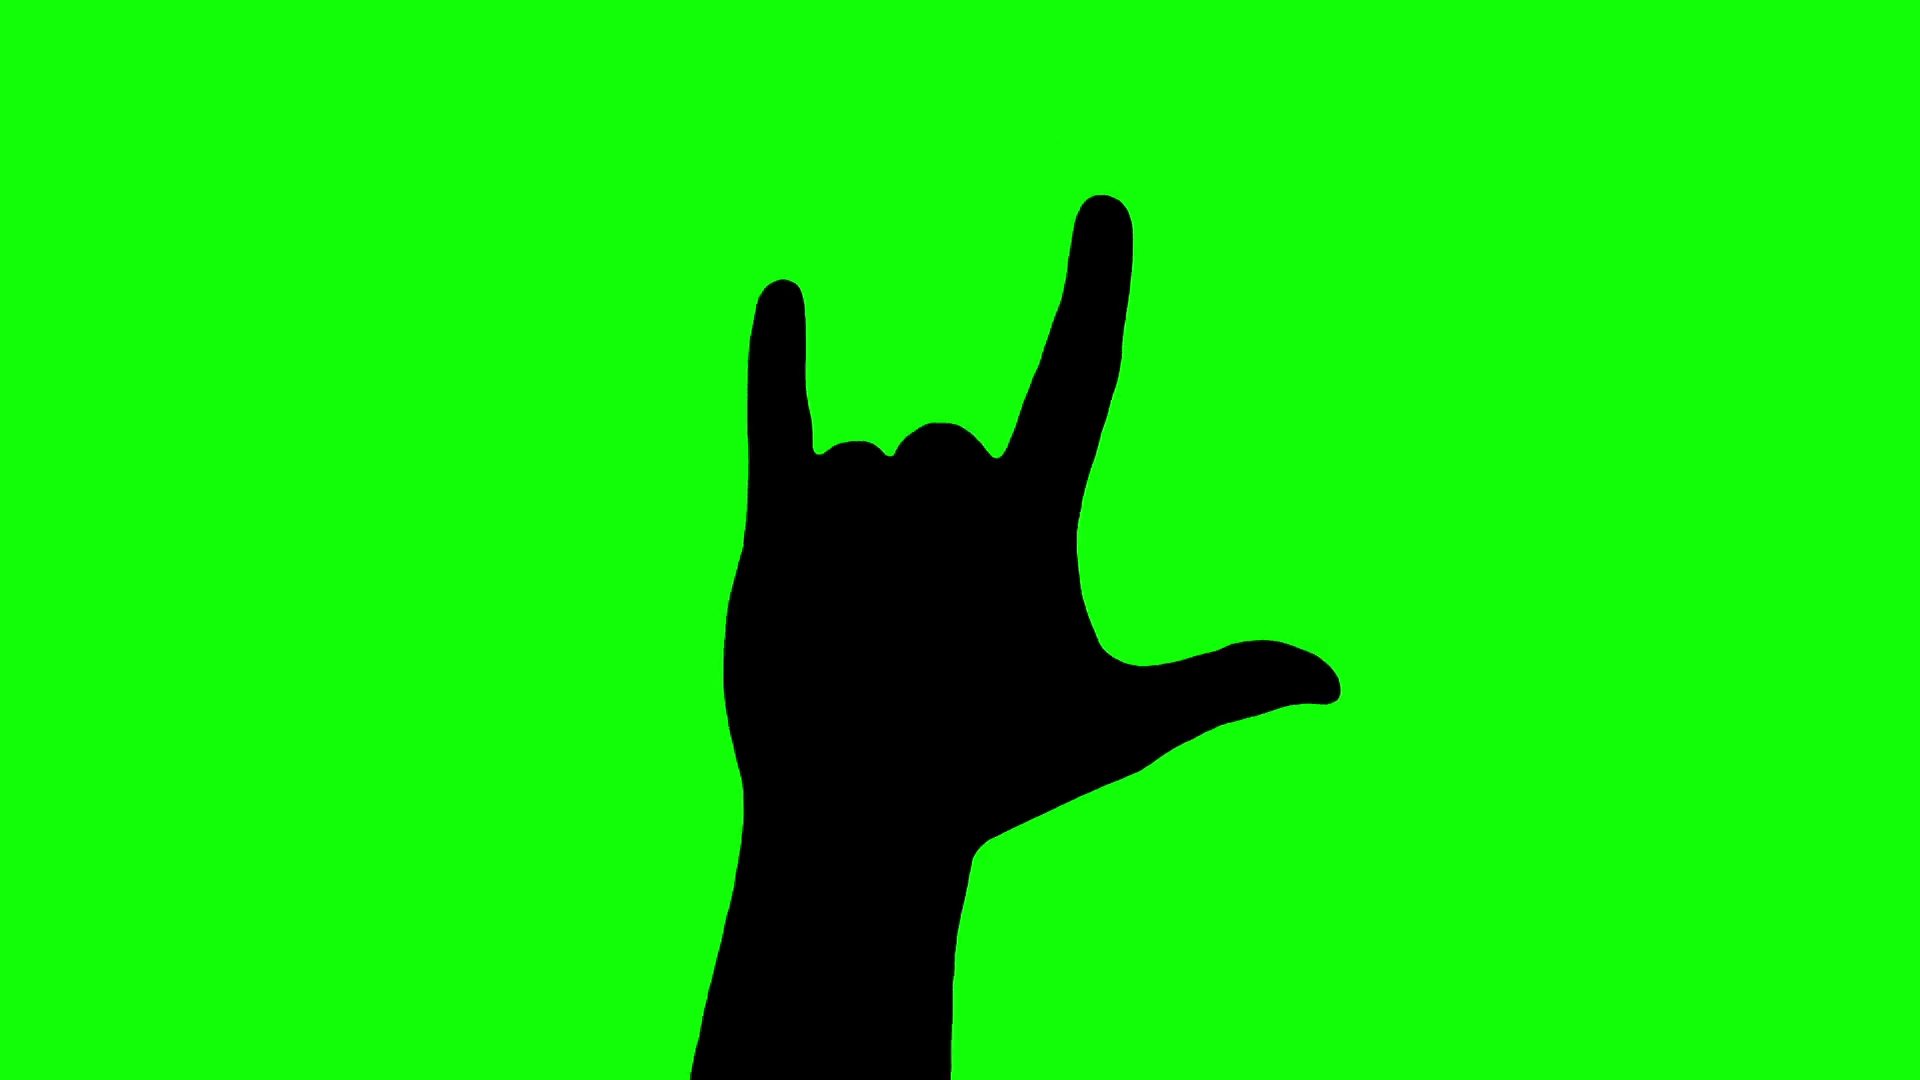 1920x1080 Hand Gesturing Heavy Metal Rock Sign Silhouette Isolated Green